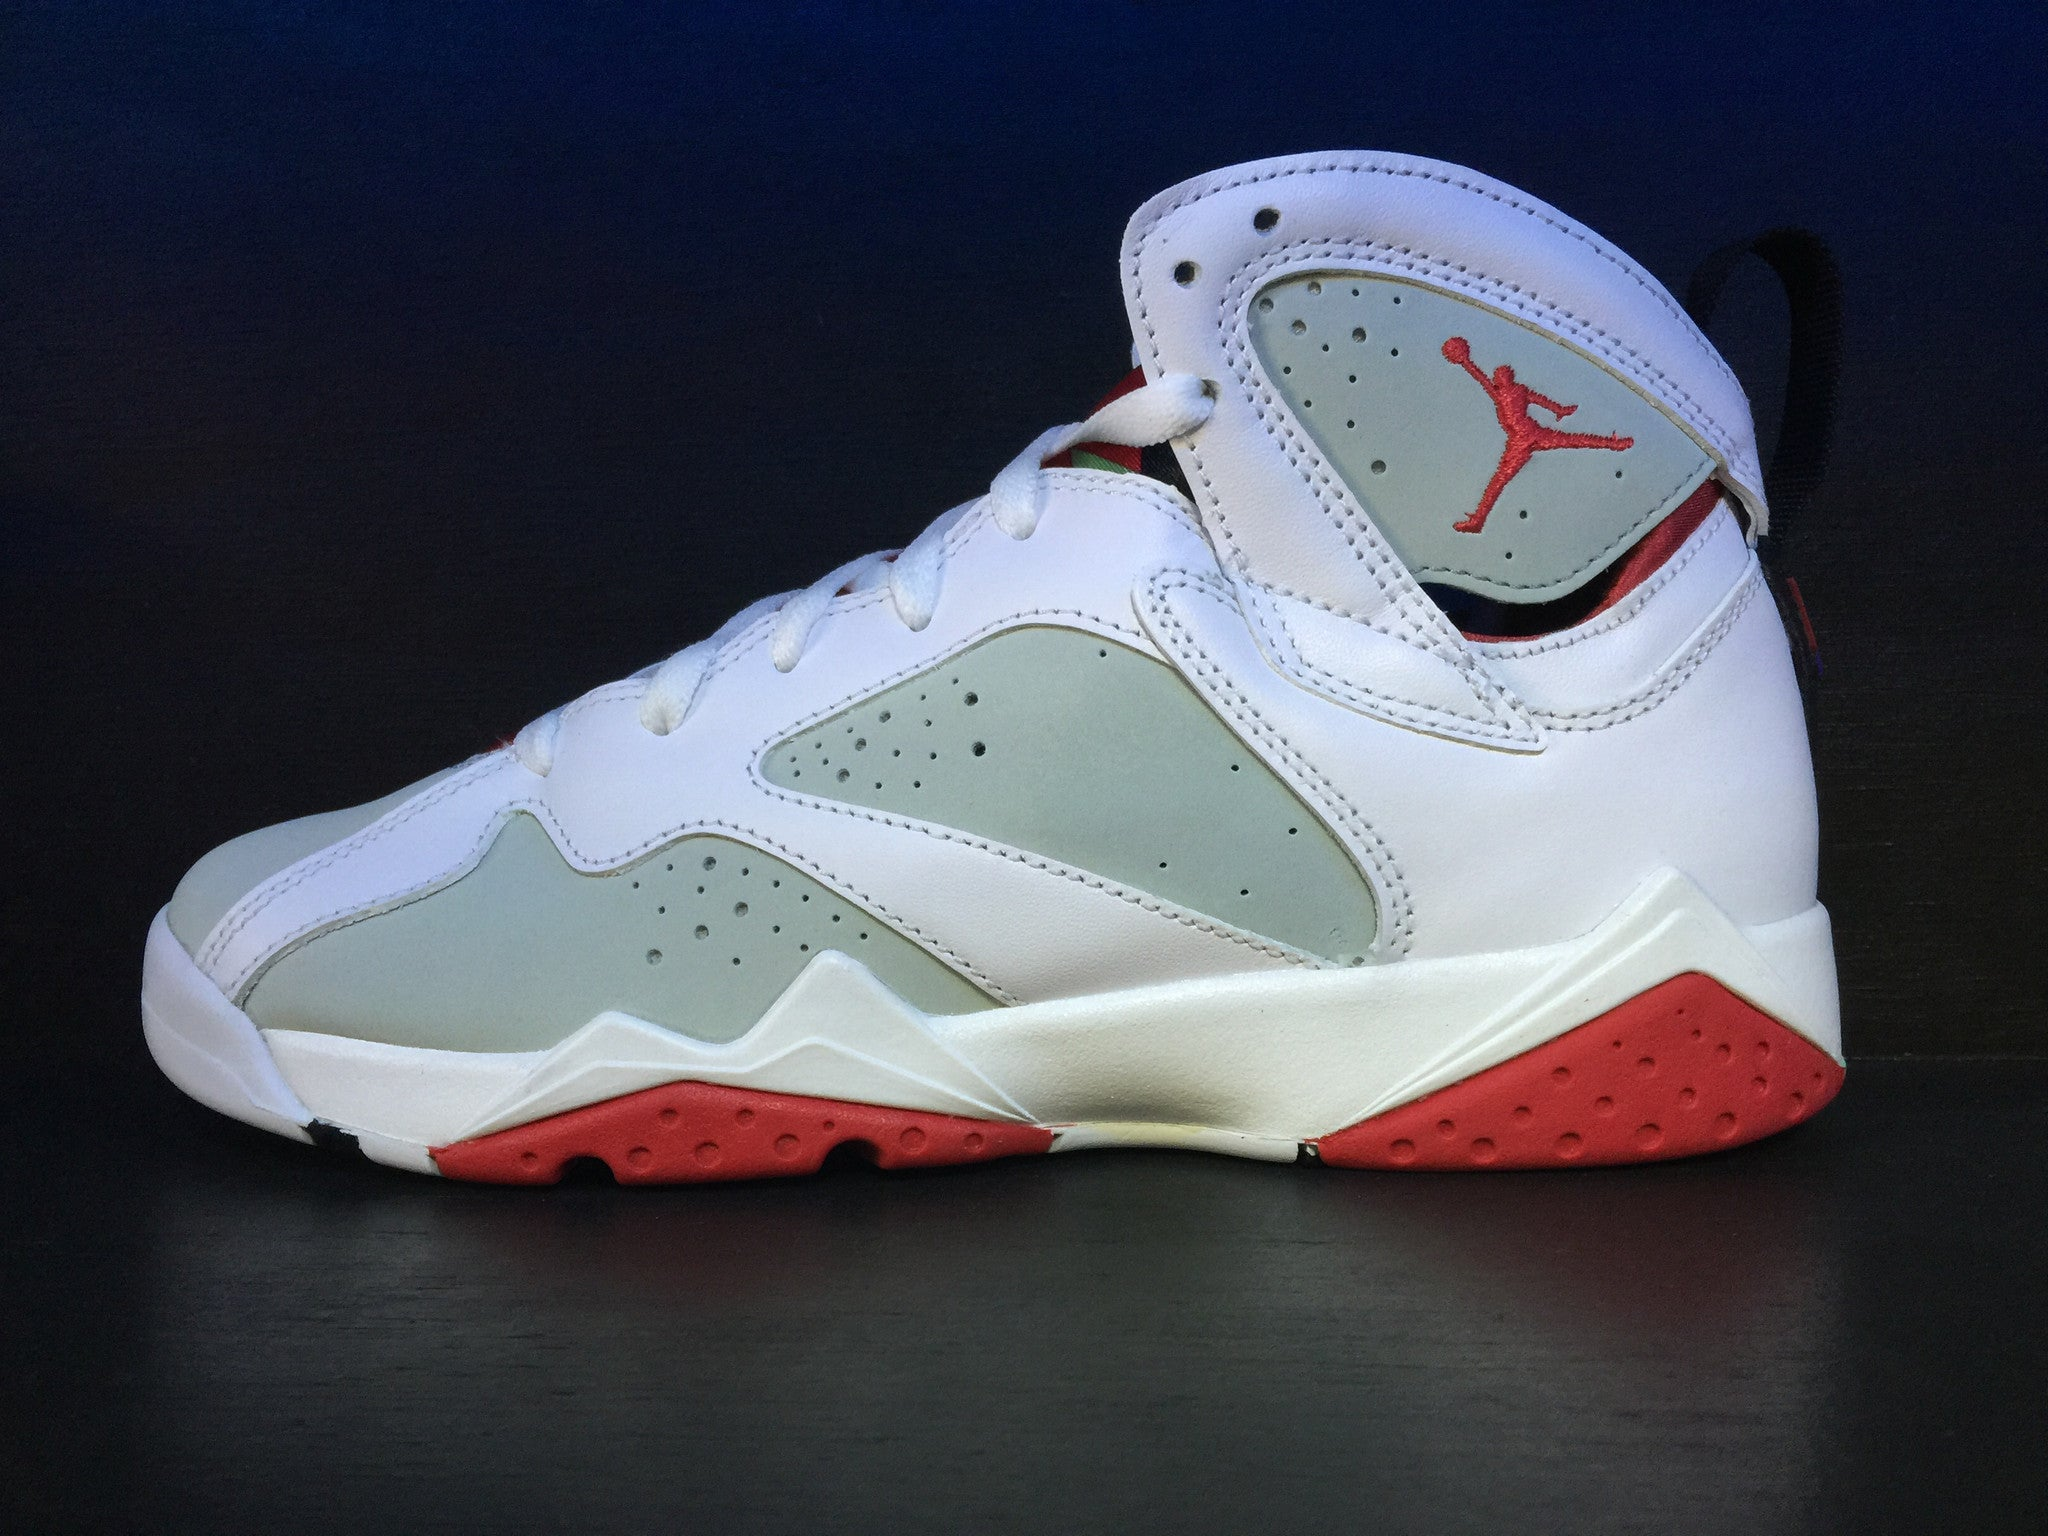 Air Jordan 7 Retro 'Hare' Grade School